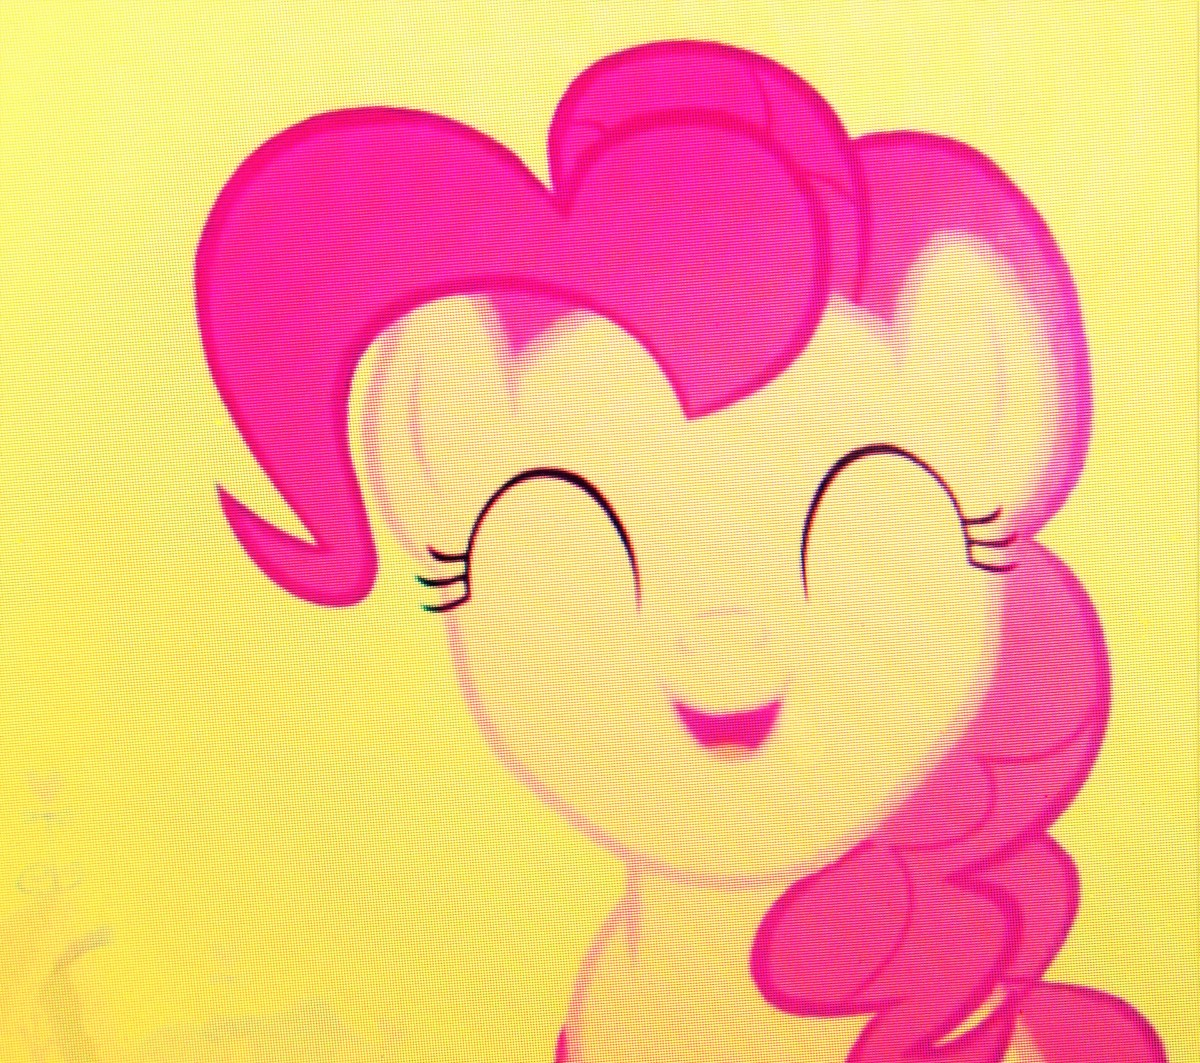 Pinkie Pie just wants to see you smile! So come on in and turn your speakers up! Pinkie Pie and MLP everything belongs to Hasbro.